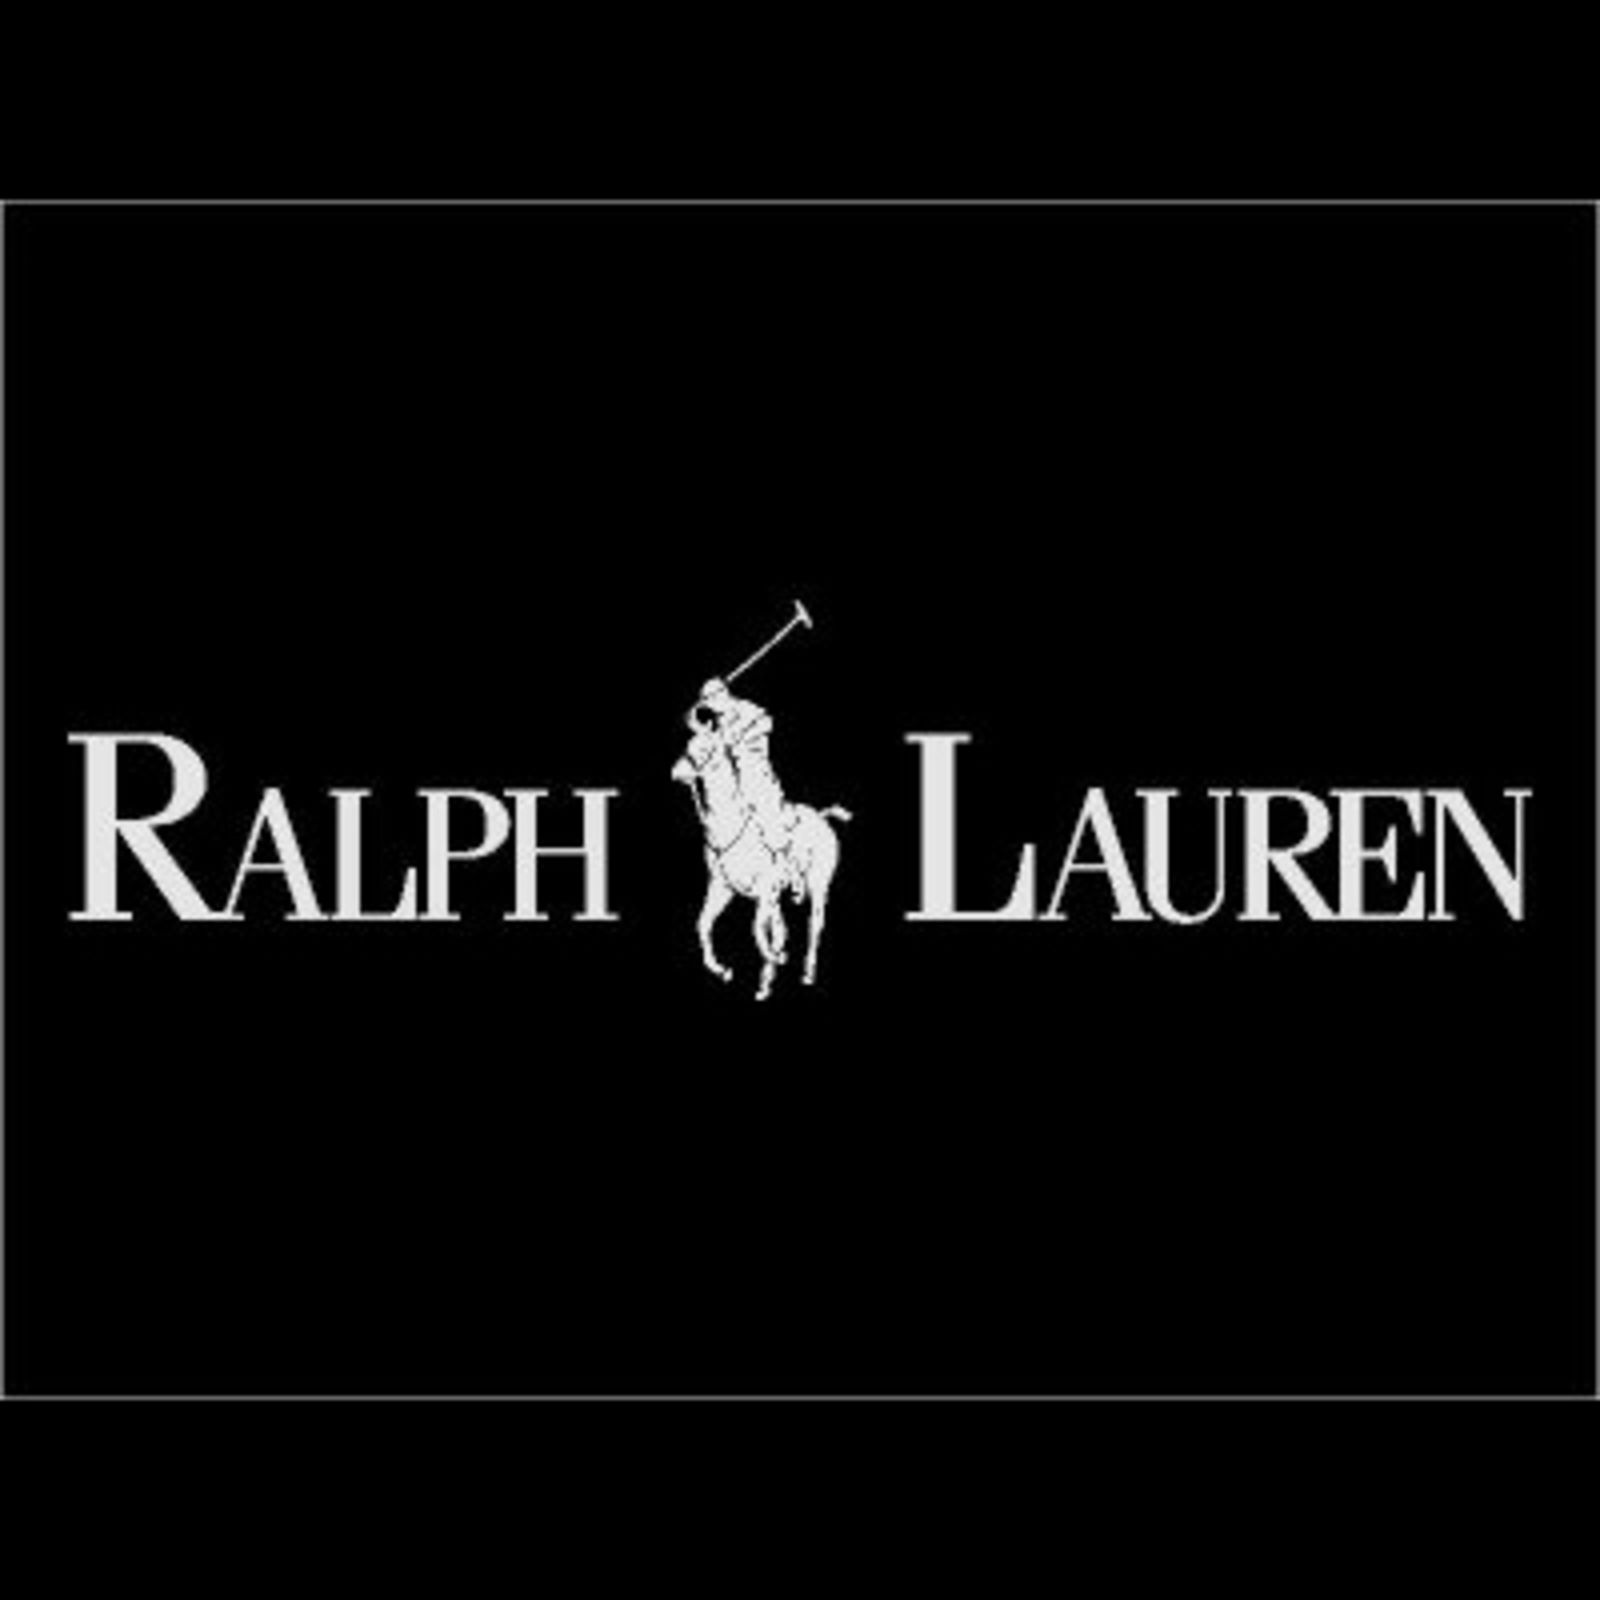 RALPH LAUREN BLACK LABEL (Image 1)